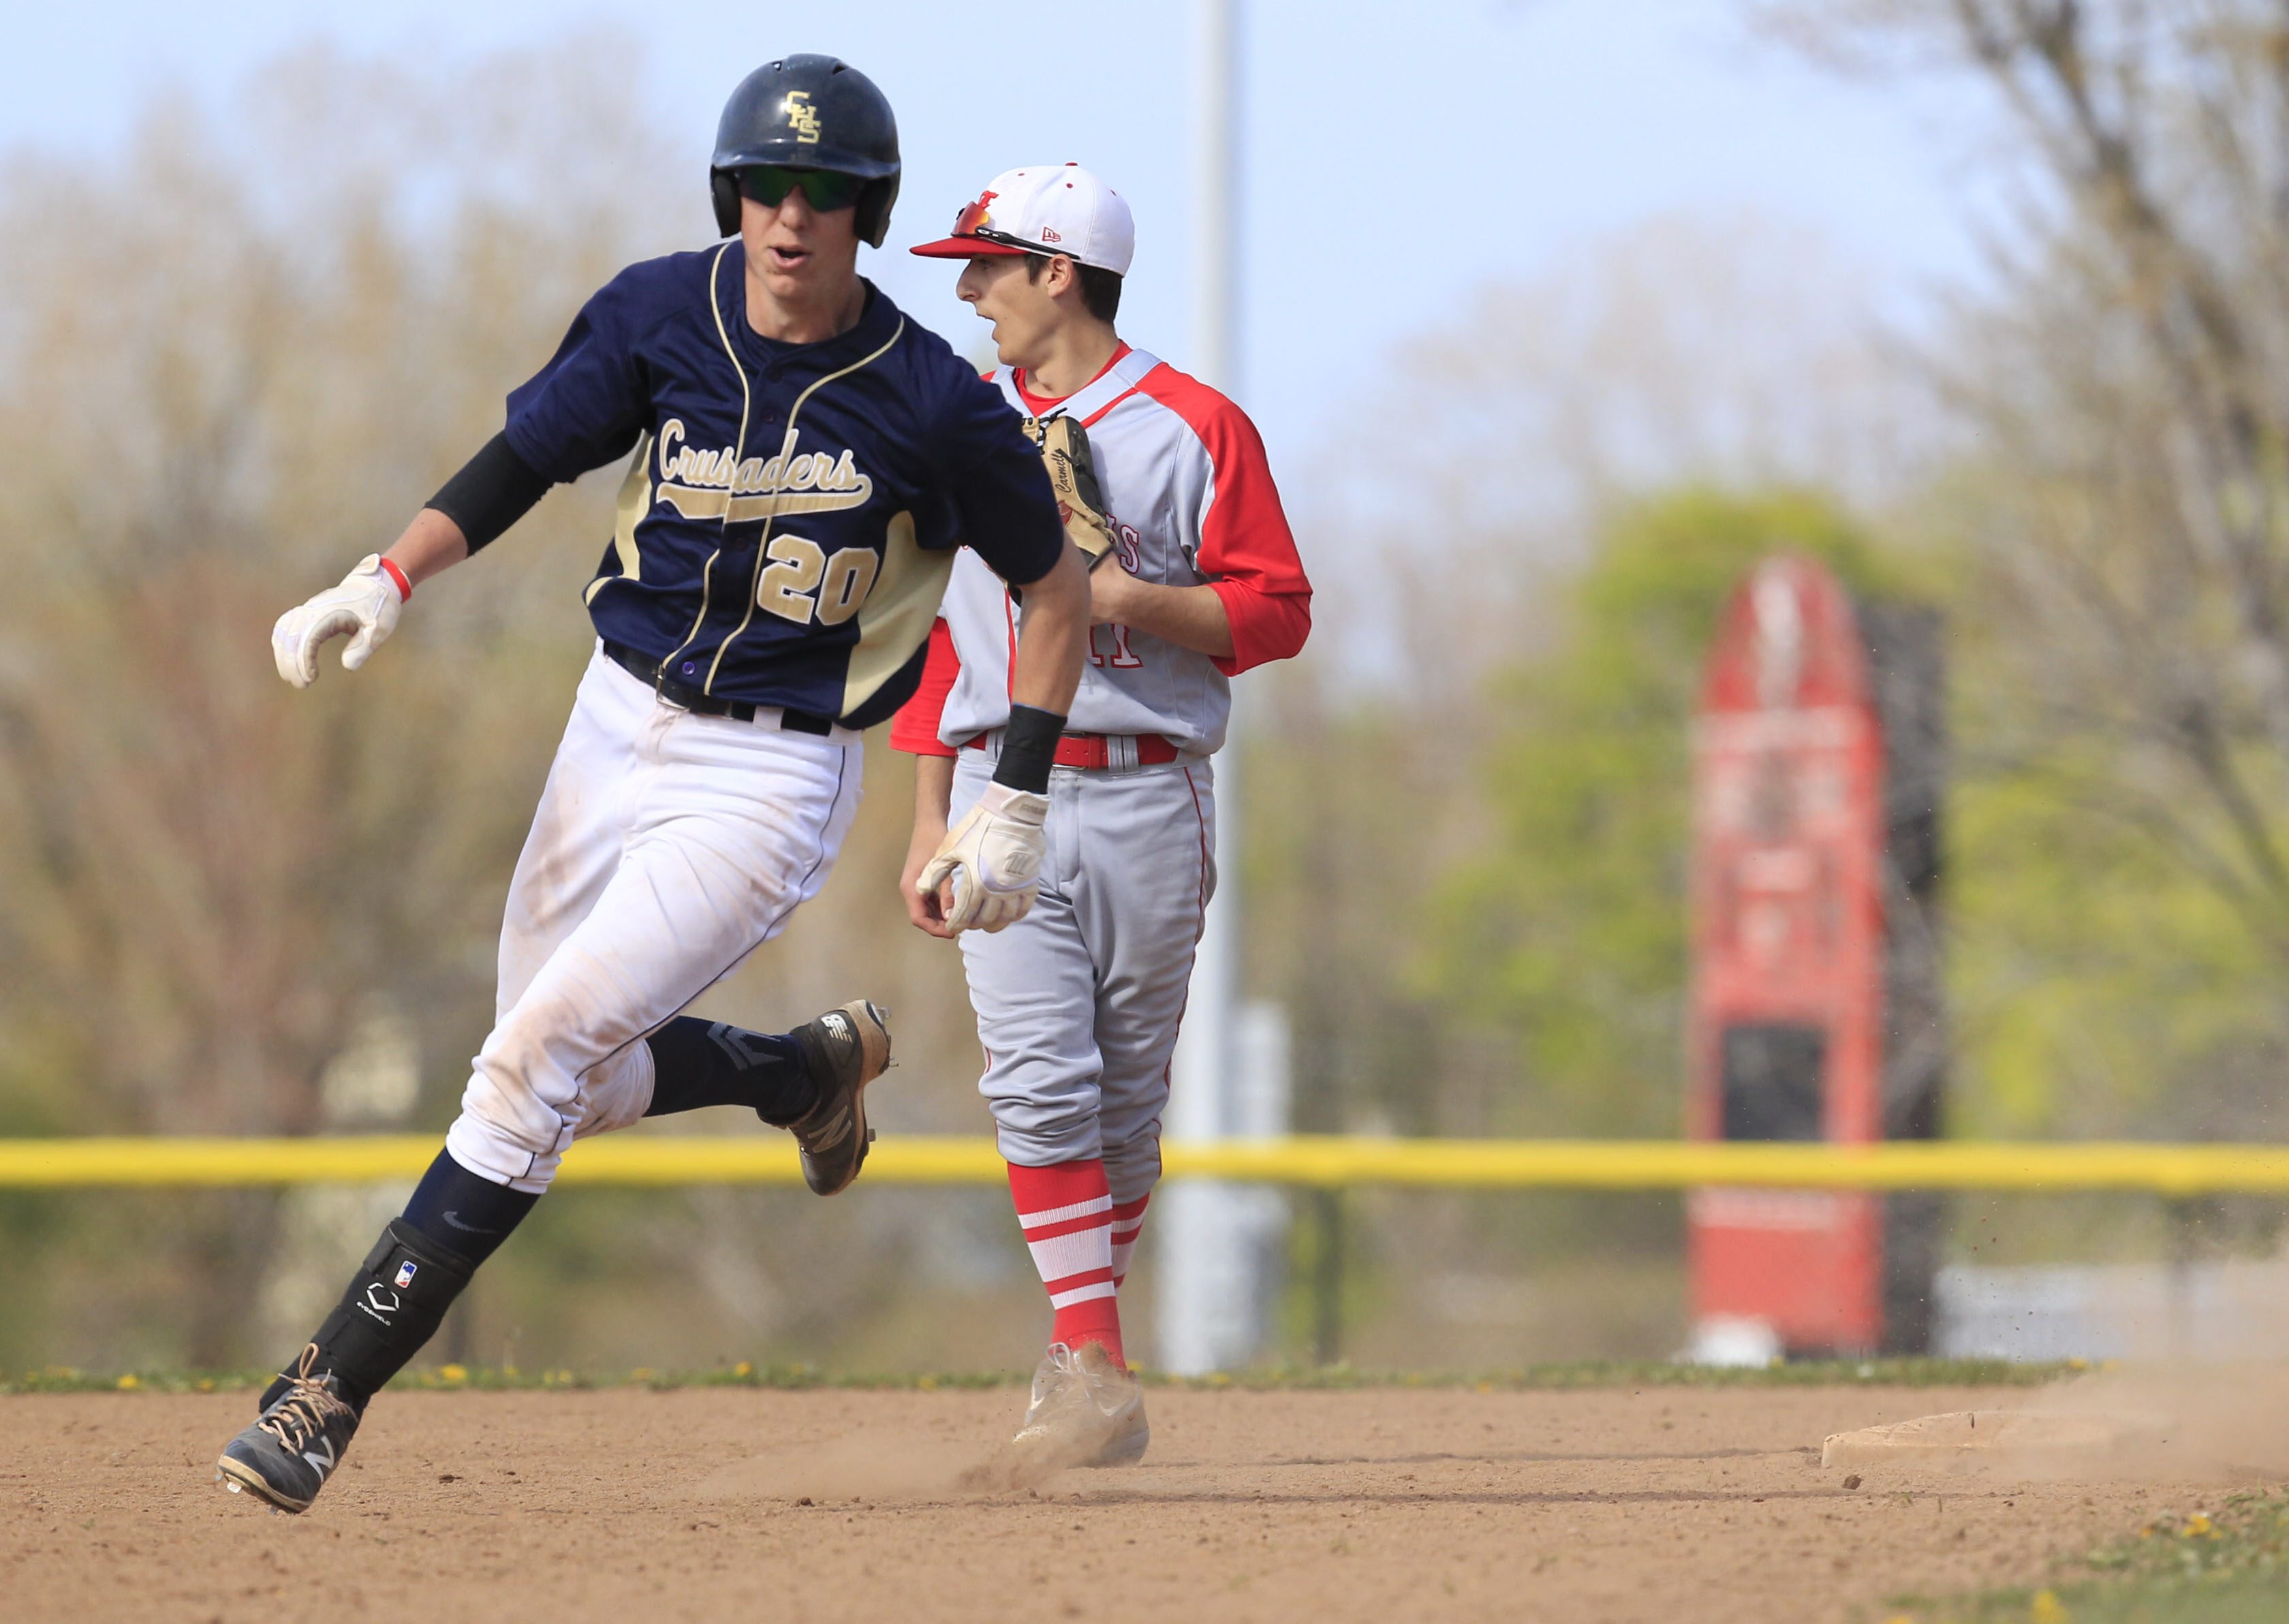 Canisius's Will Lawrence rounds second as he hits a triple against St. Francis during the 2016 season. (Harry Scull Jr./Buffalo News)